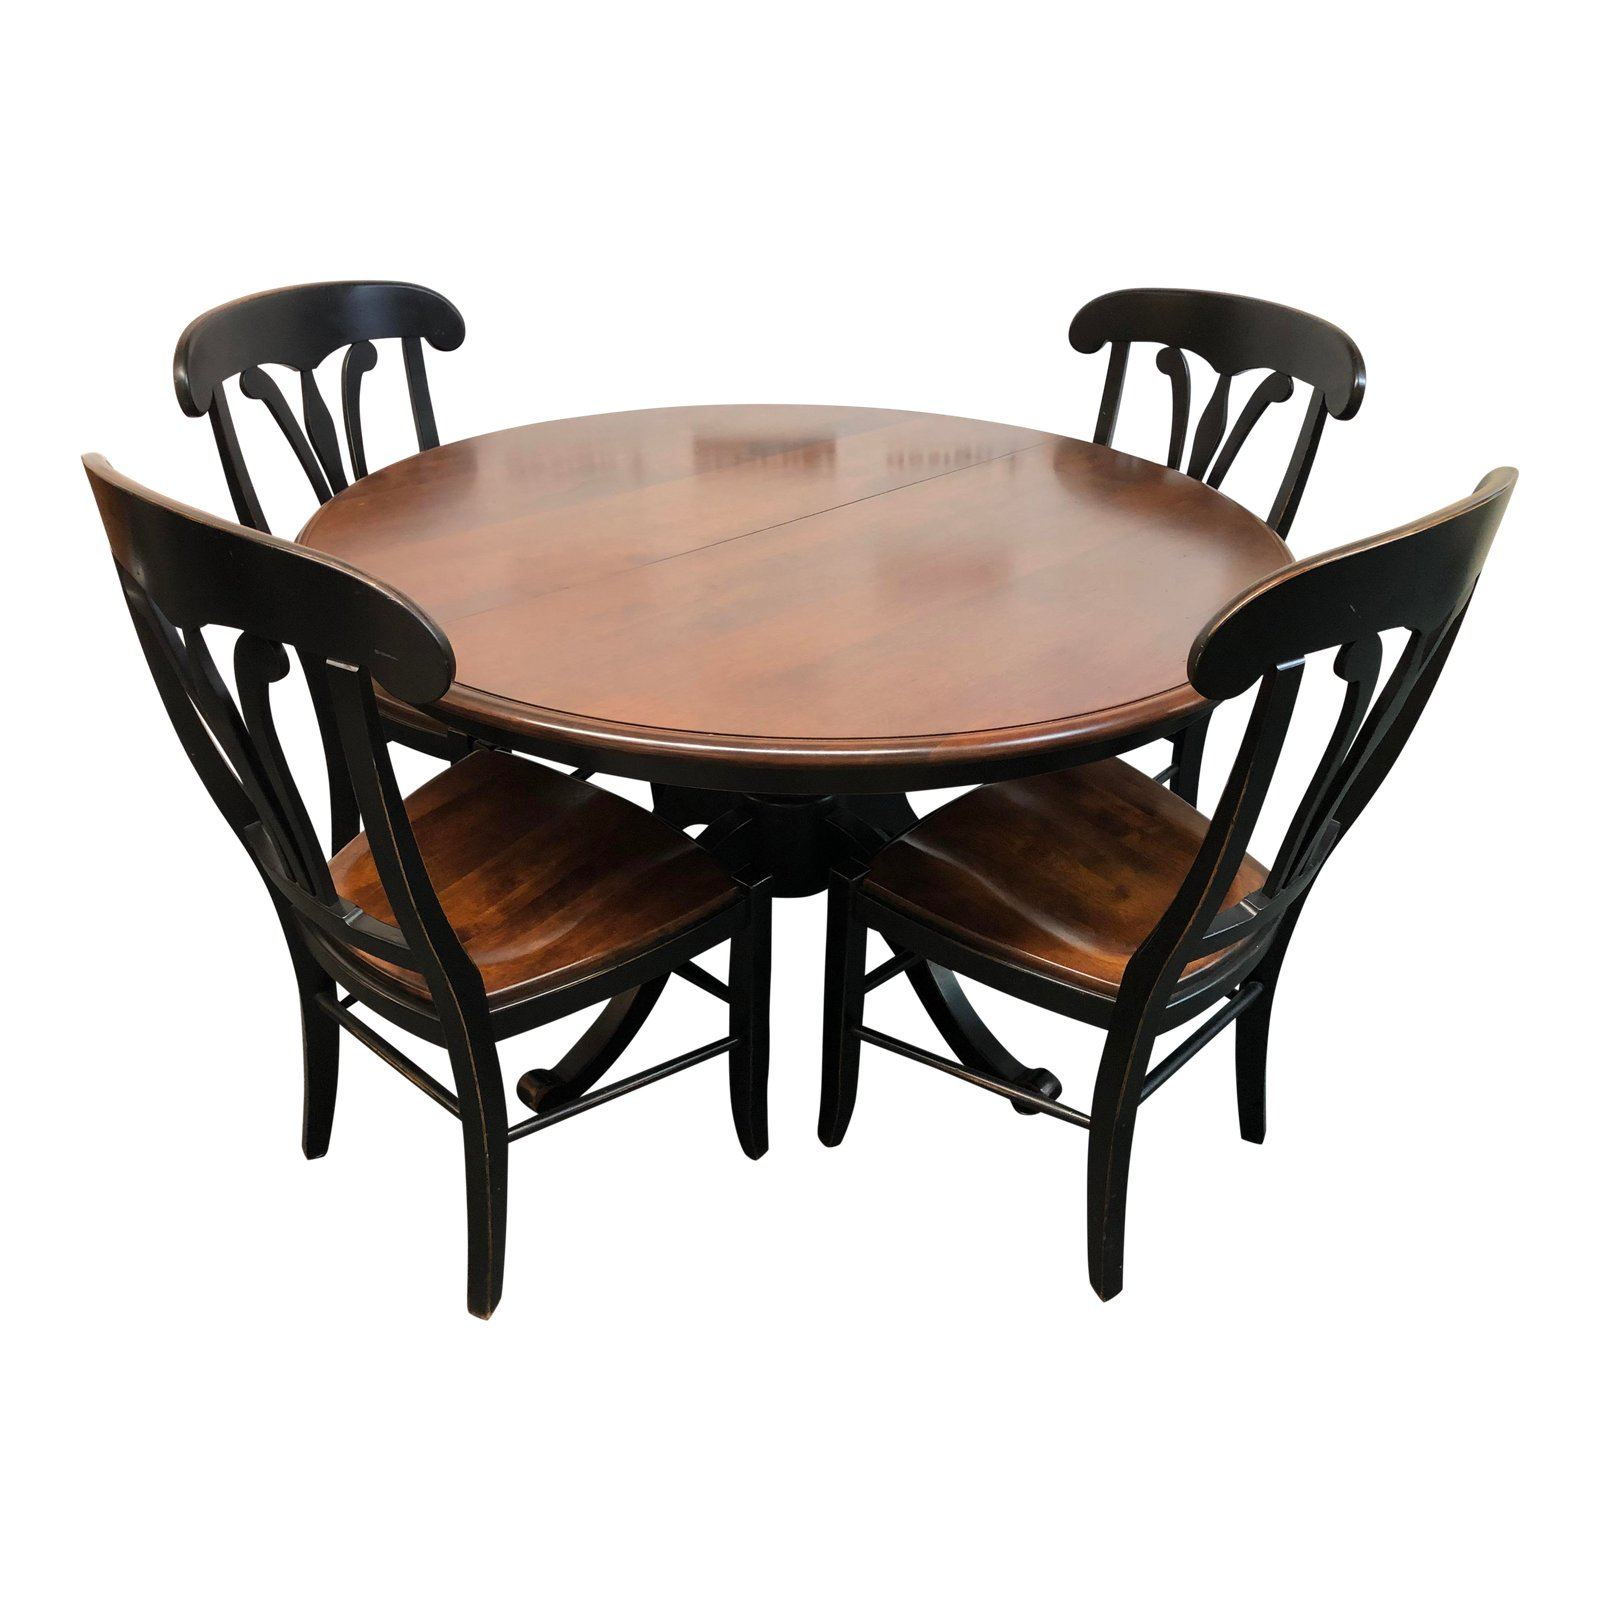 Stockbridge Pedestal Dining Table 4 Country Manor Chairs By Nichols Stone Original Price 500